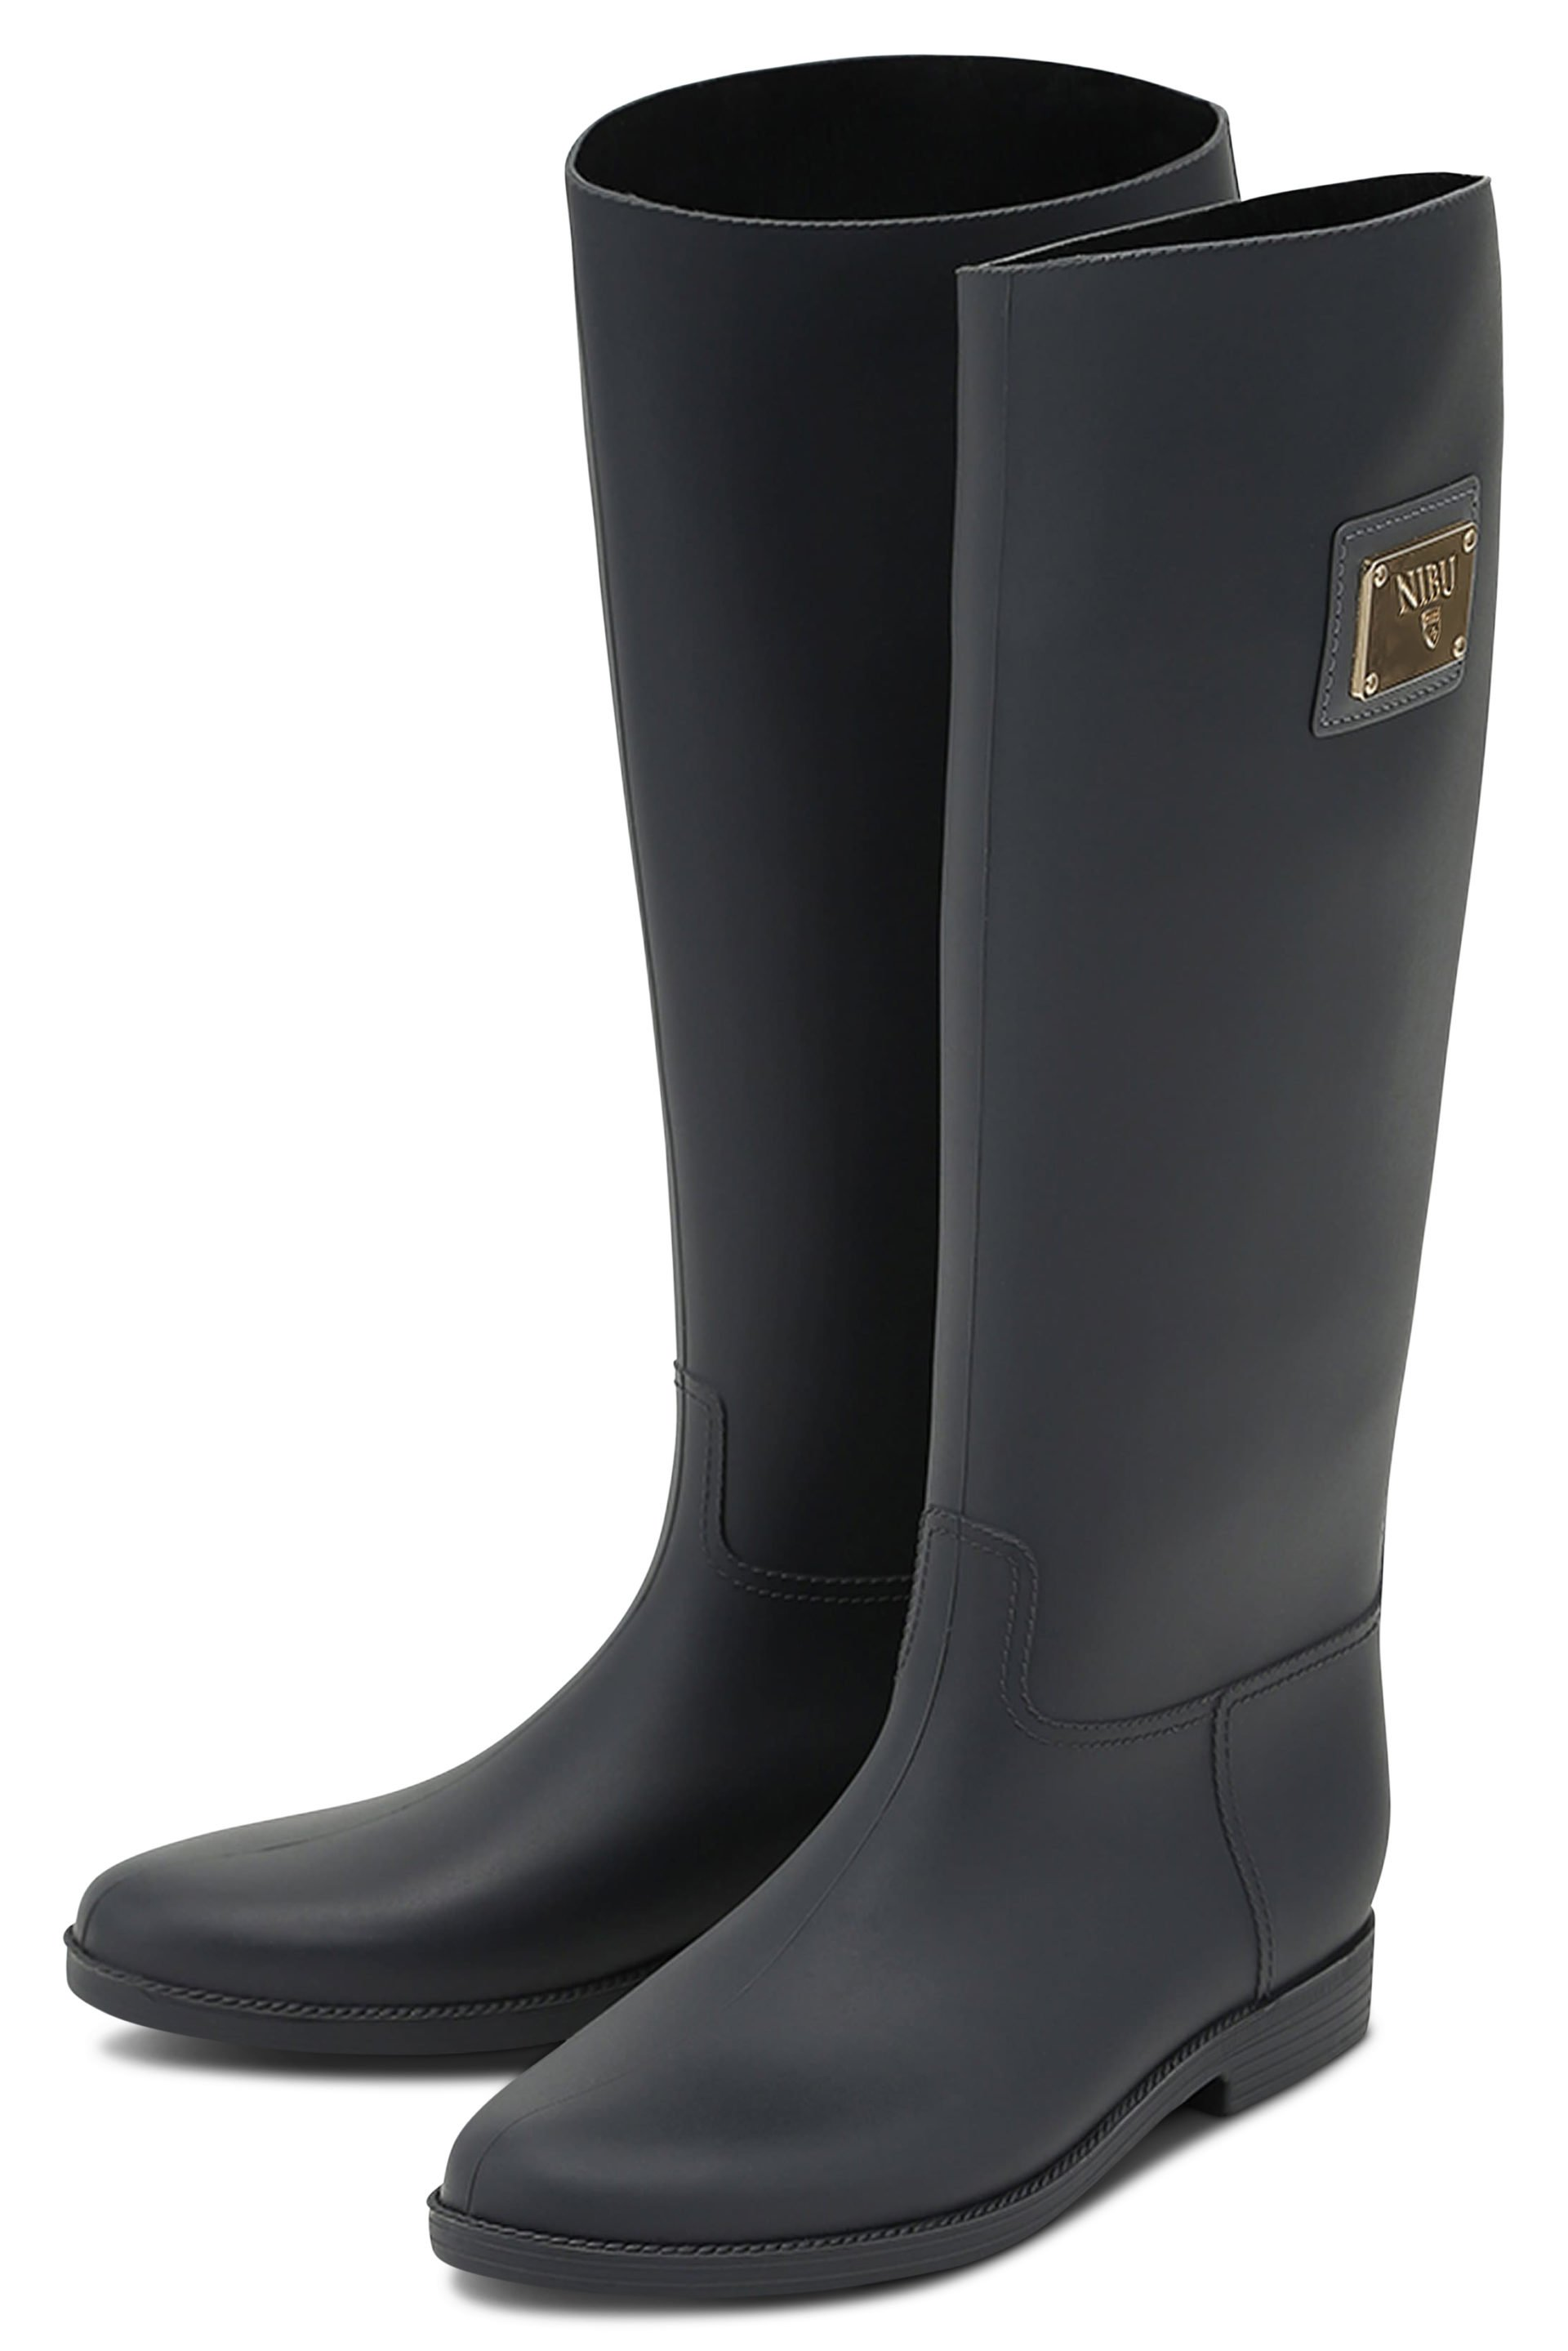 Grey rainboots with gold-colour logo